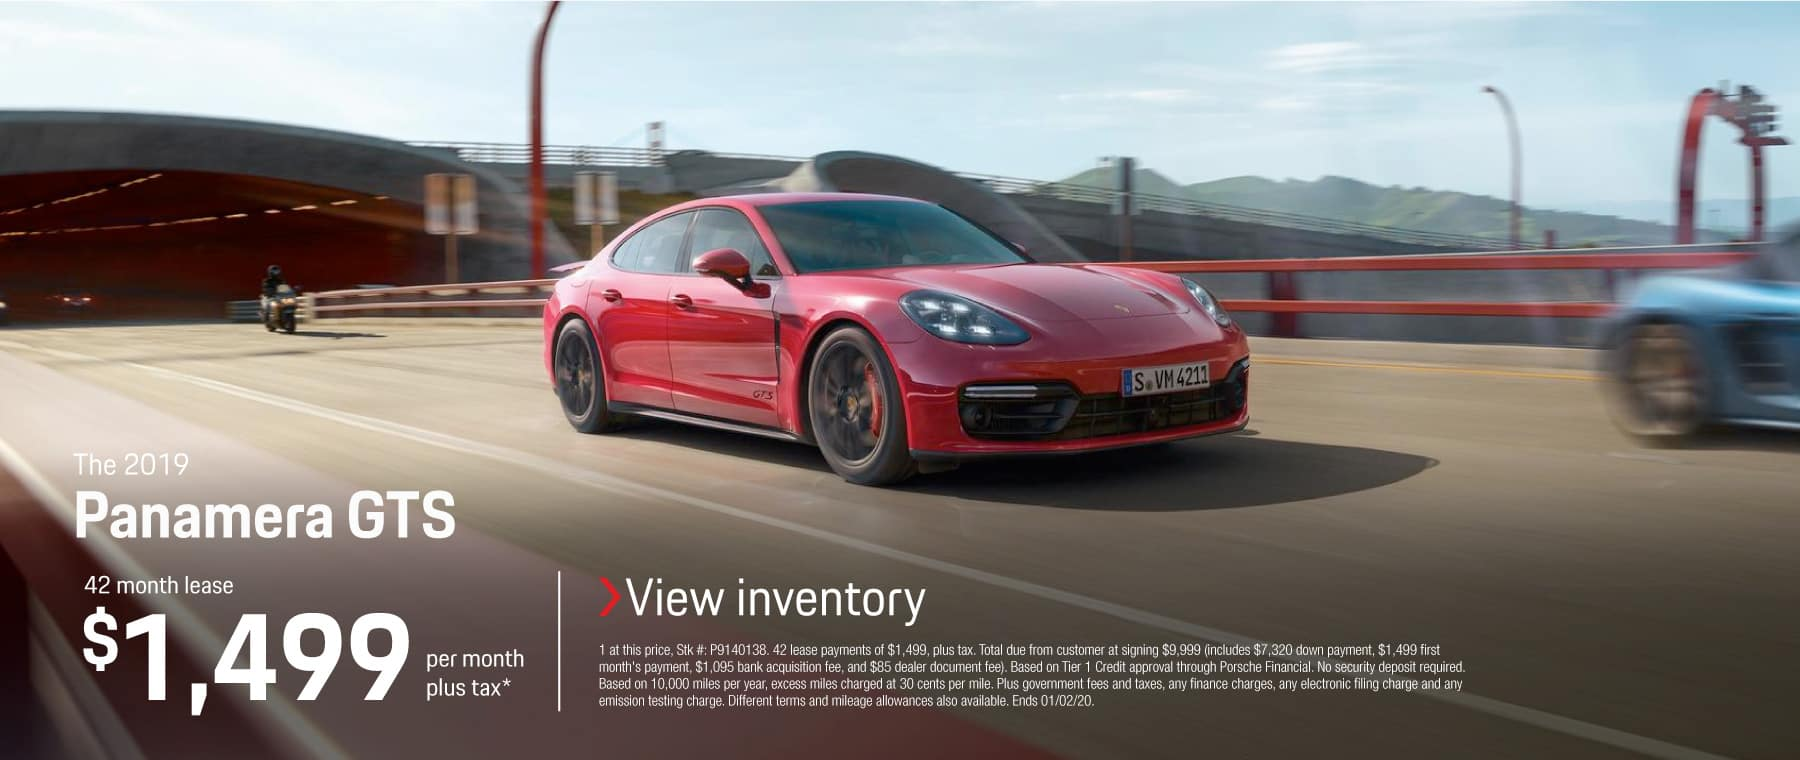 2019 PANAMERA GTS LEASE 1499 / 42 MONTHS